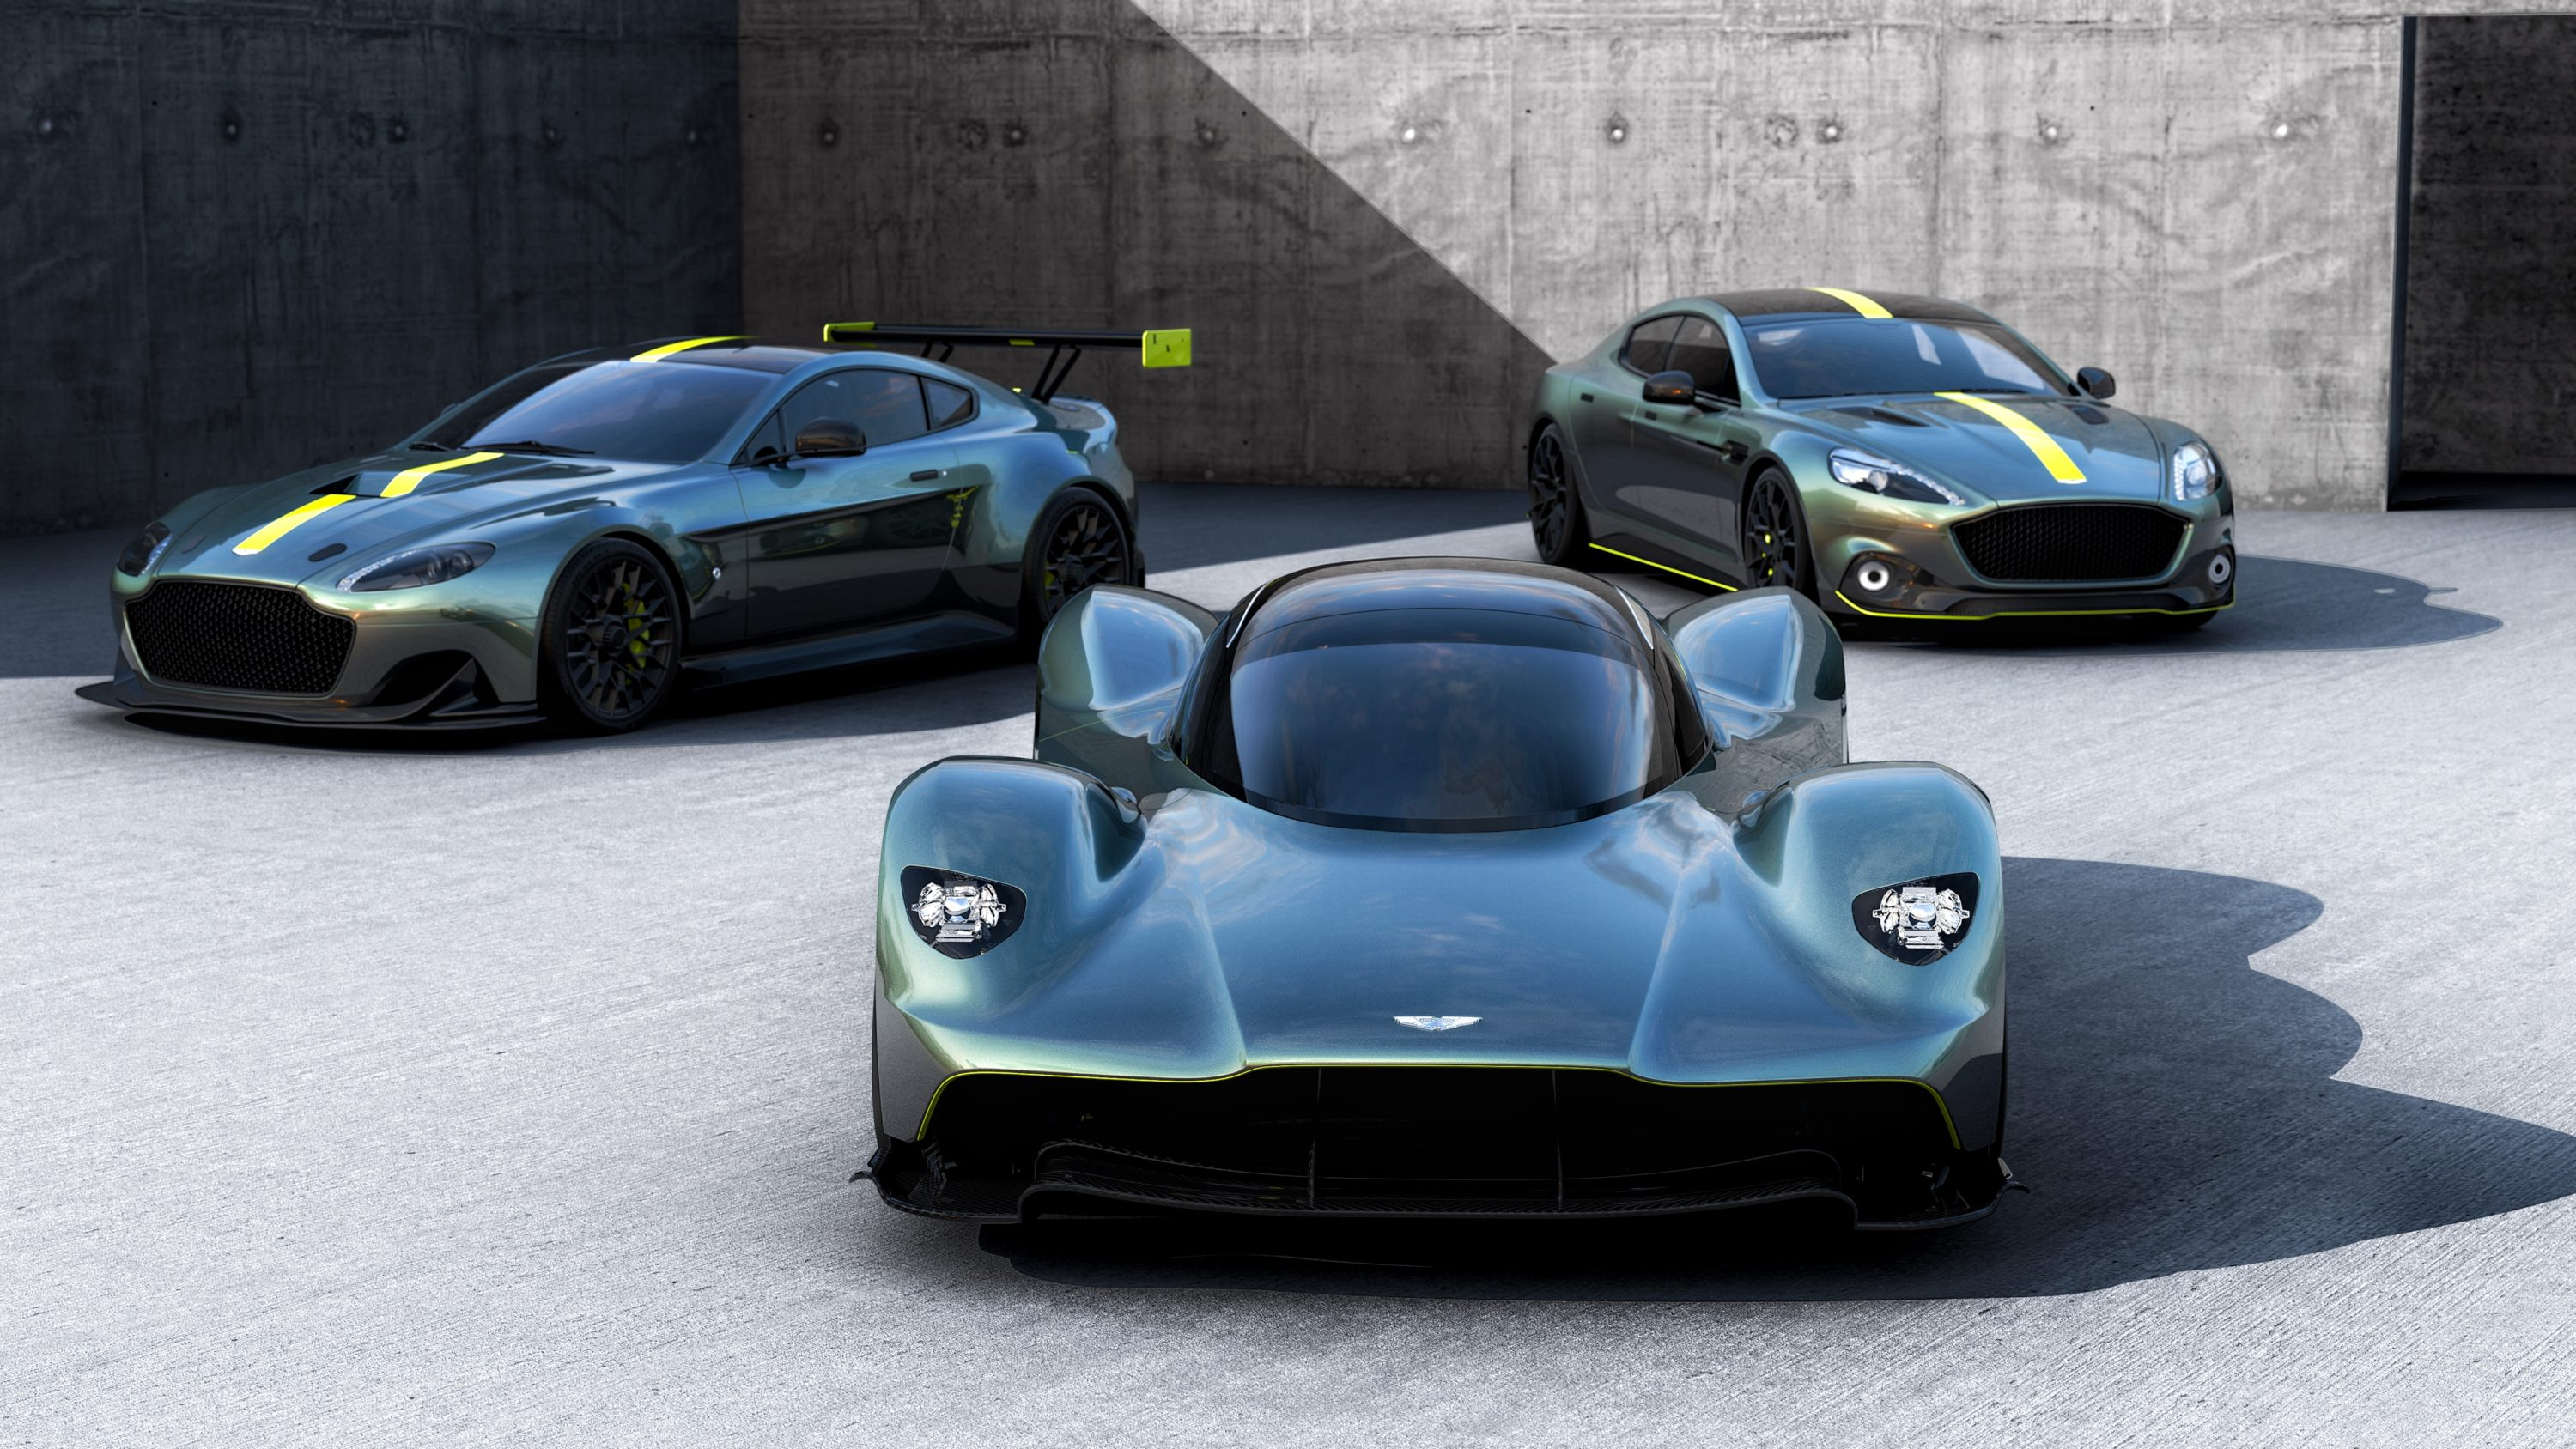 aston martin amr strengthens connection between road and race cars trackworthy. Black Bedroom Furniture Sets. Home Design Ideas